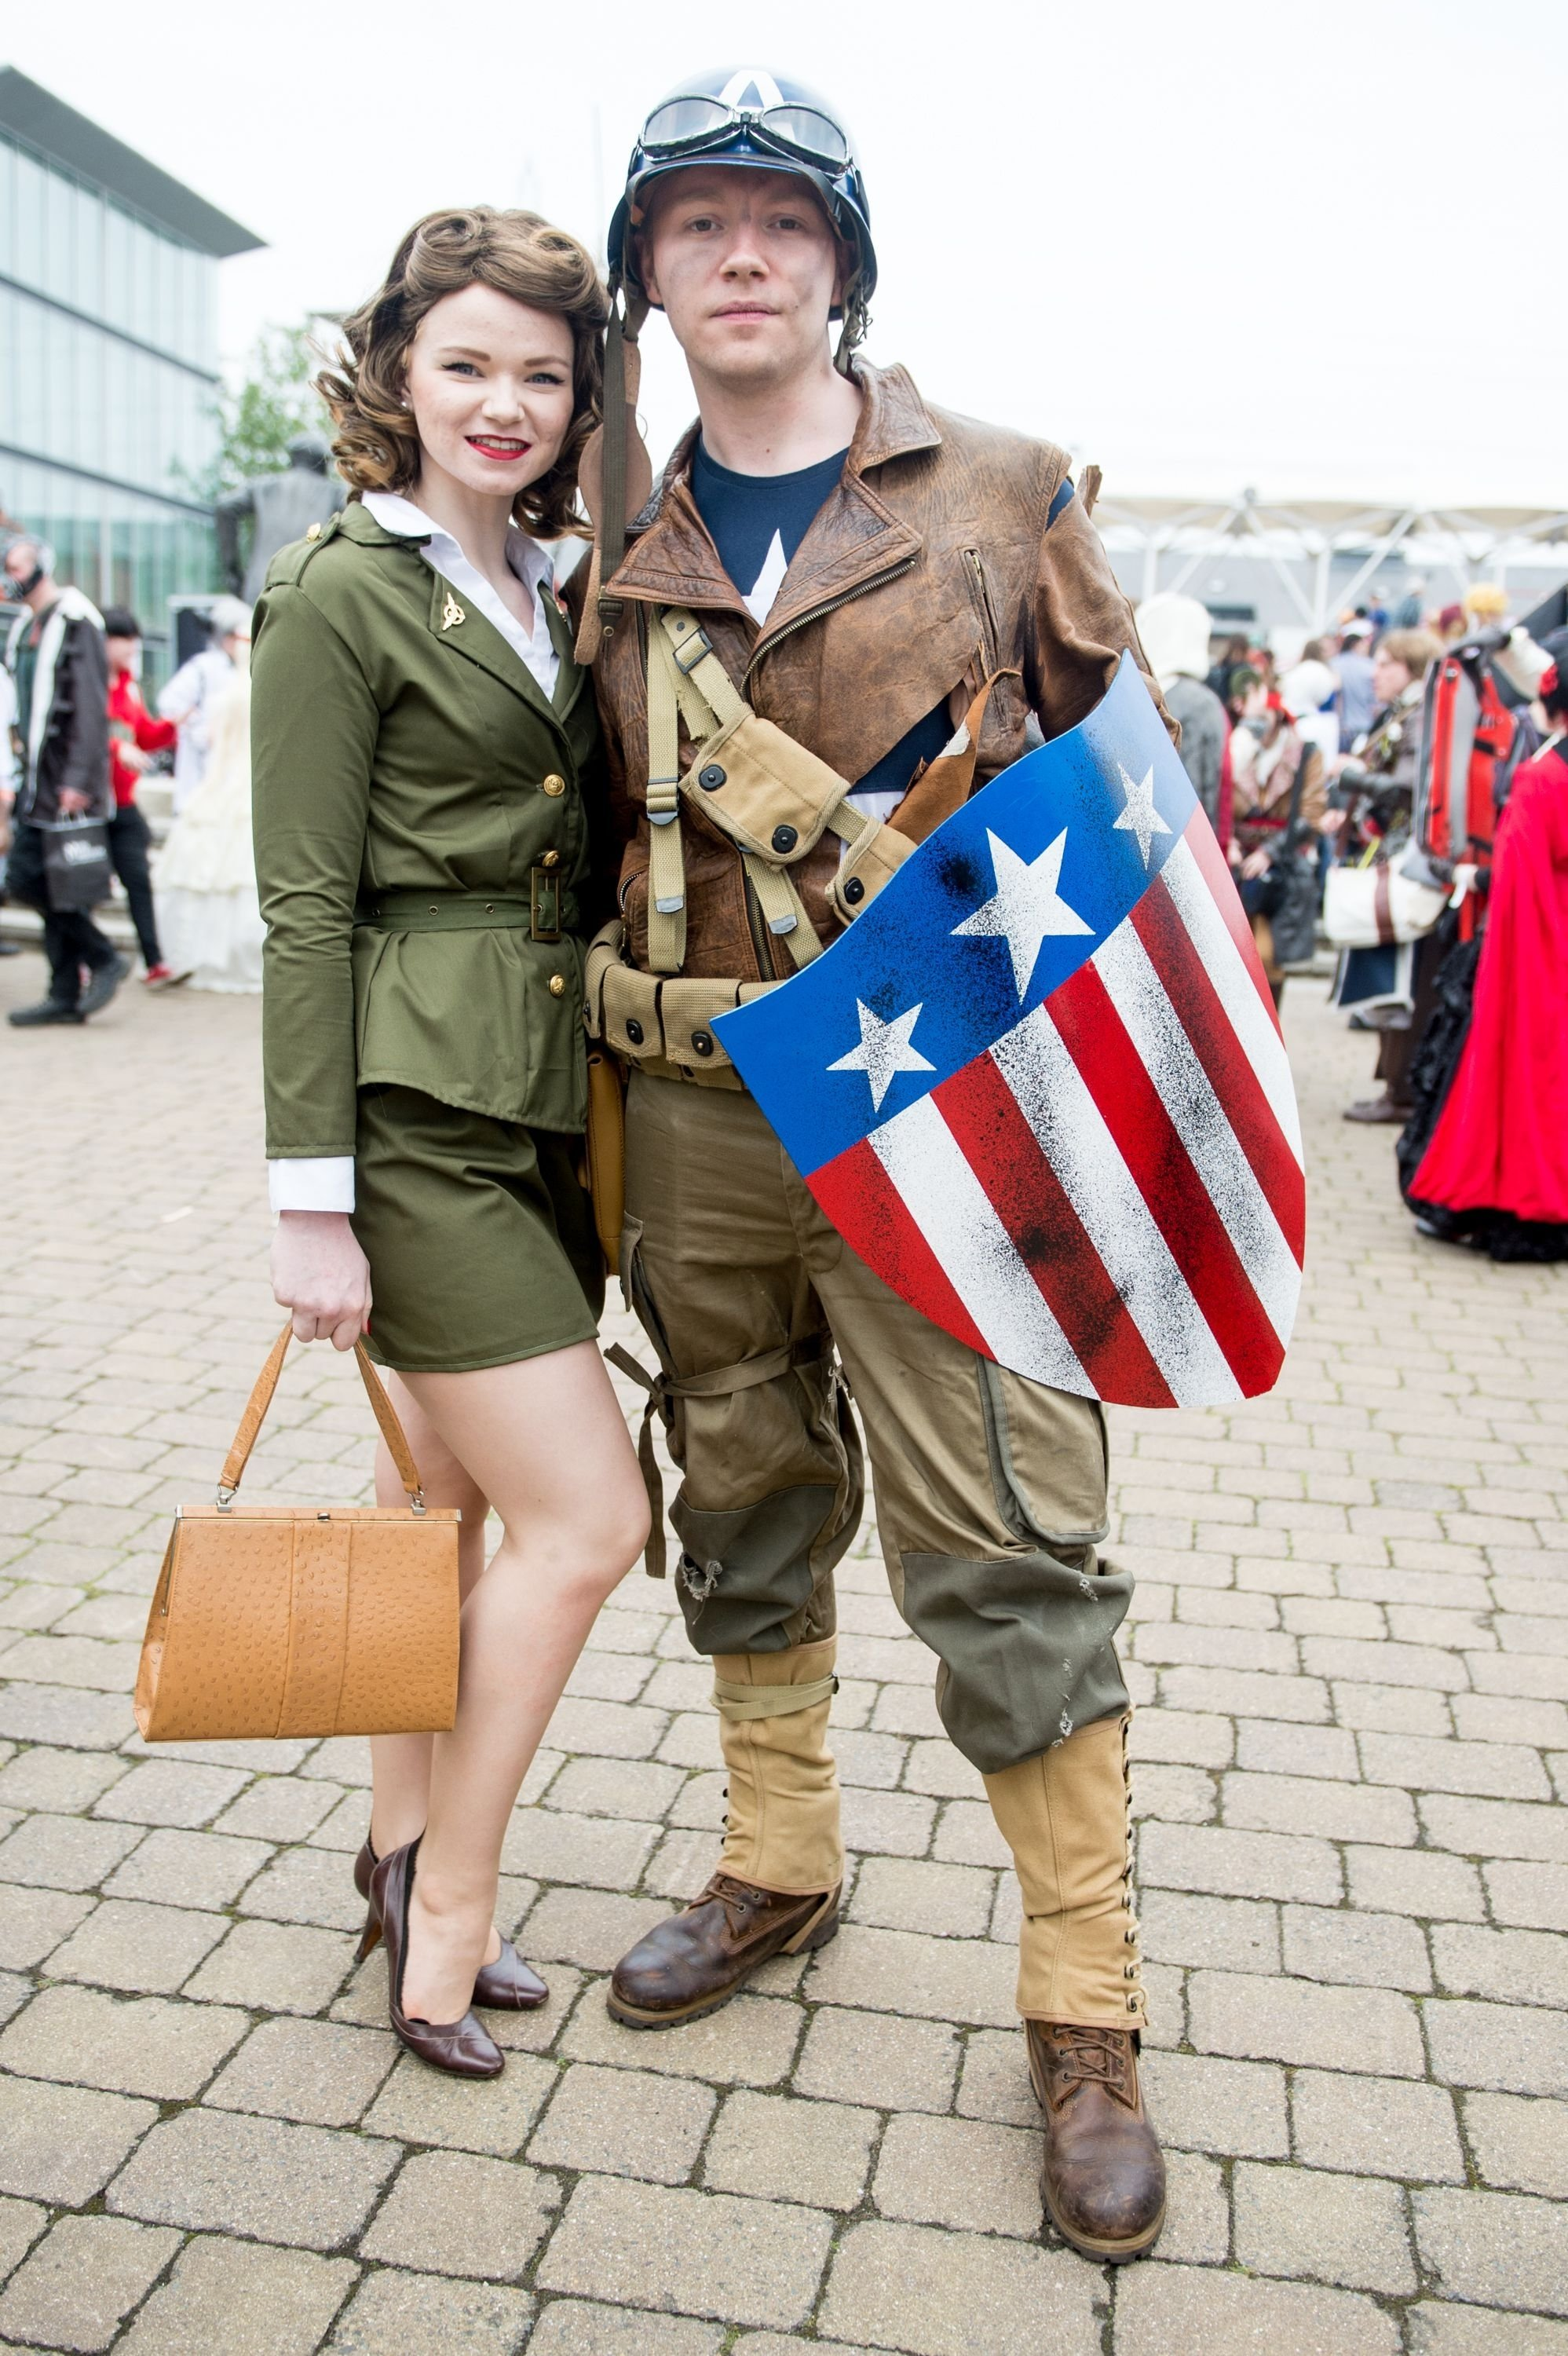 10 Stylish Good Costume Ideas For Couples 55 cute halloween costumes for couples 2017 best ideas for 4 2020